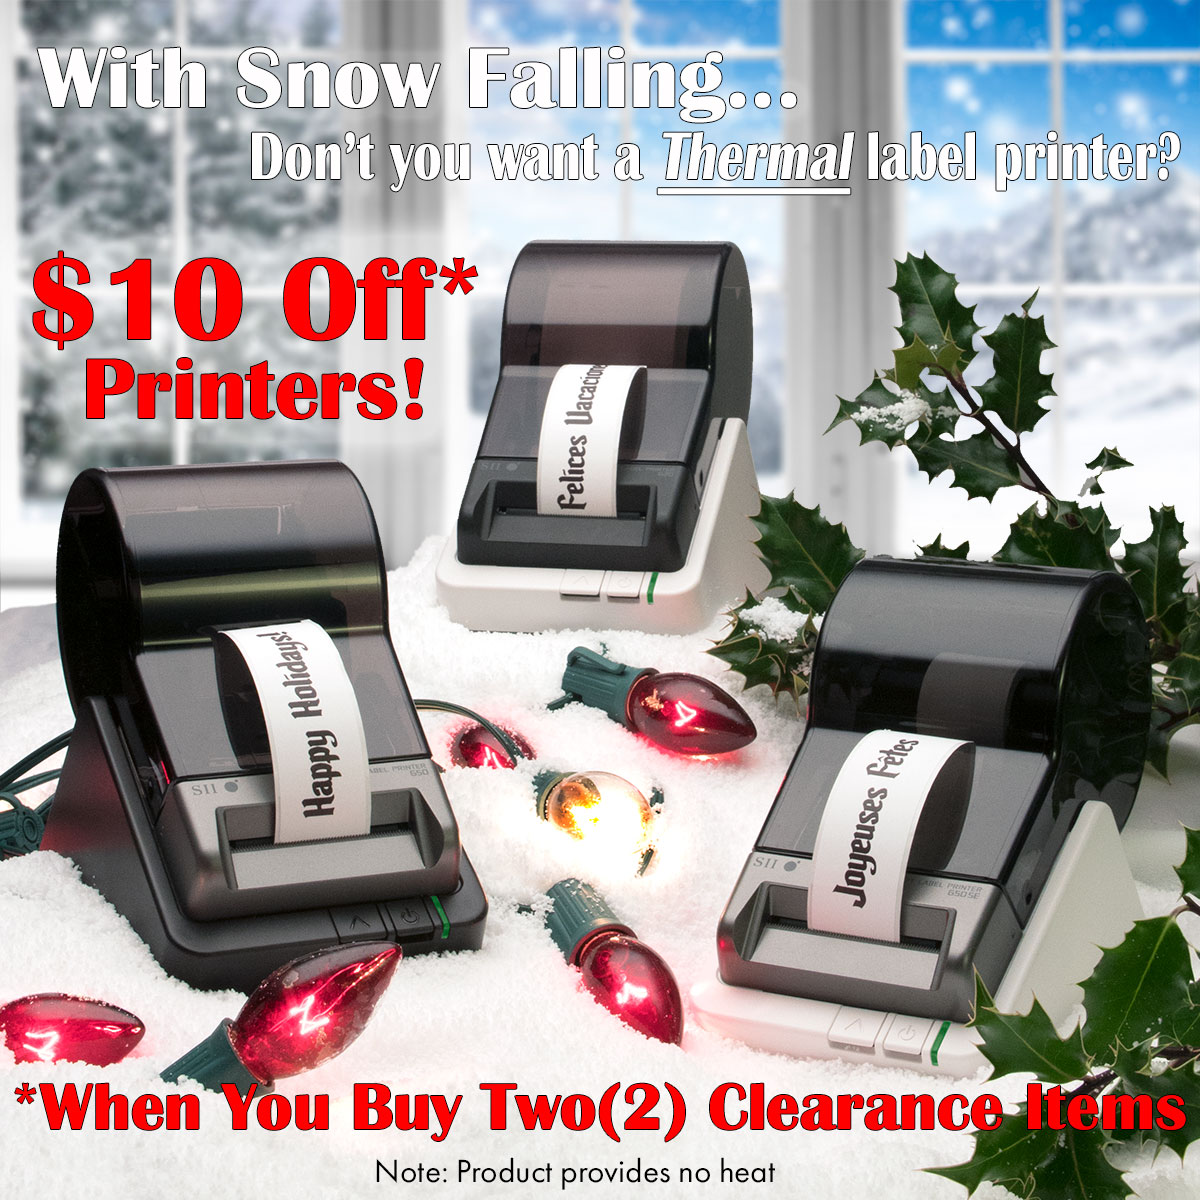 $10.00 off Smart Label Printer with purchase of two clearance items